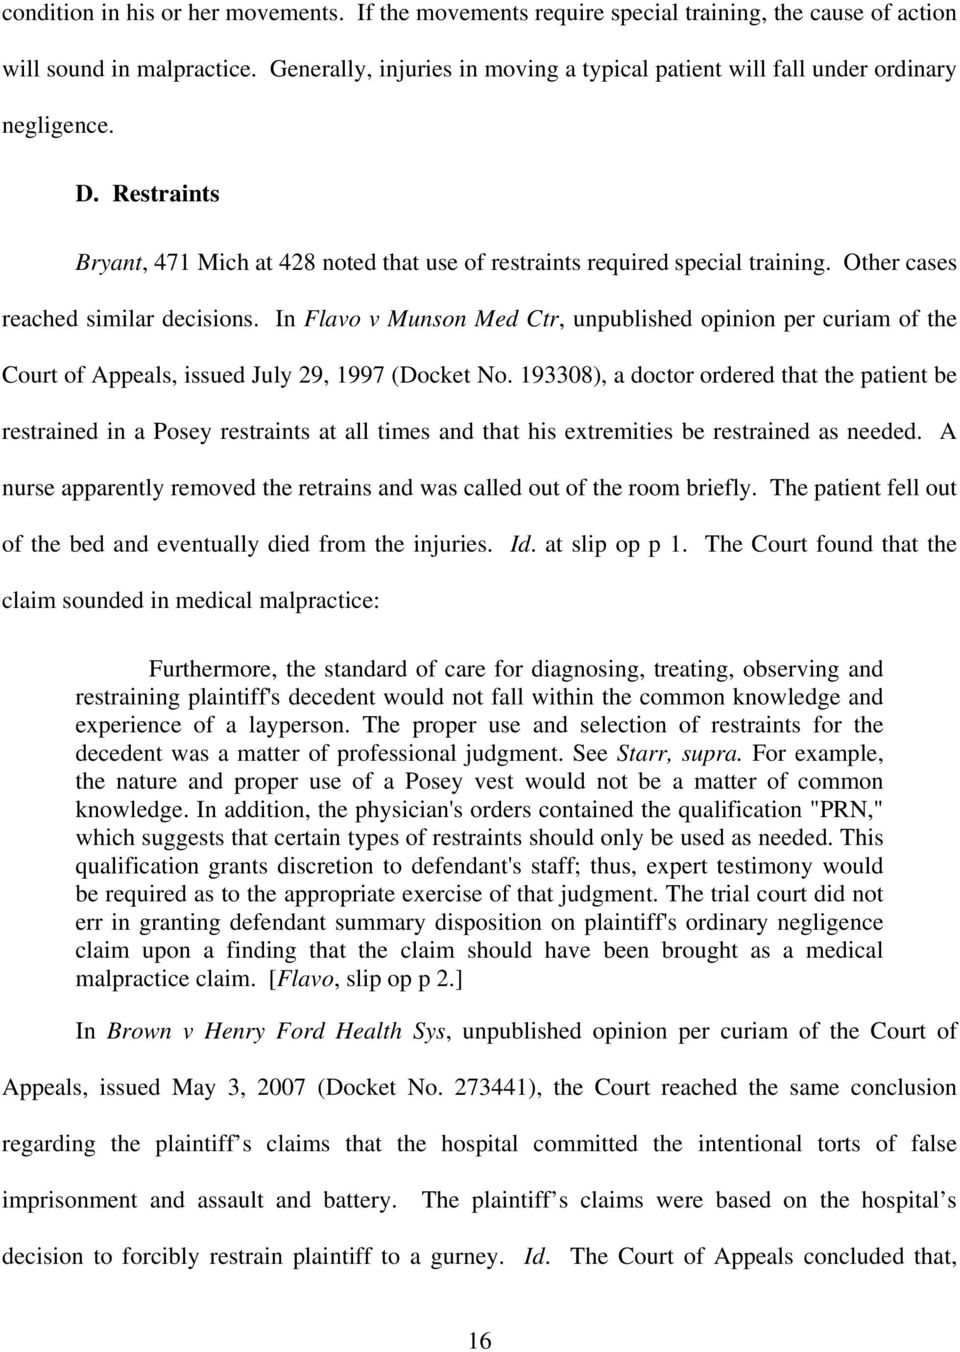 Other cases reached similar decisions. In Flavo v Munson Med Ctr, unpublished opinion per curiam of the Court of Appeals, issued July 29, 1997 (Docket No.